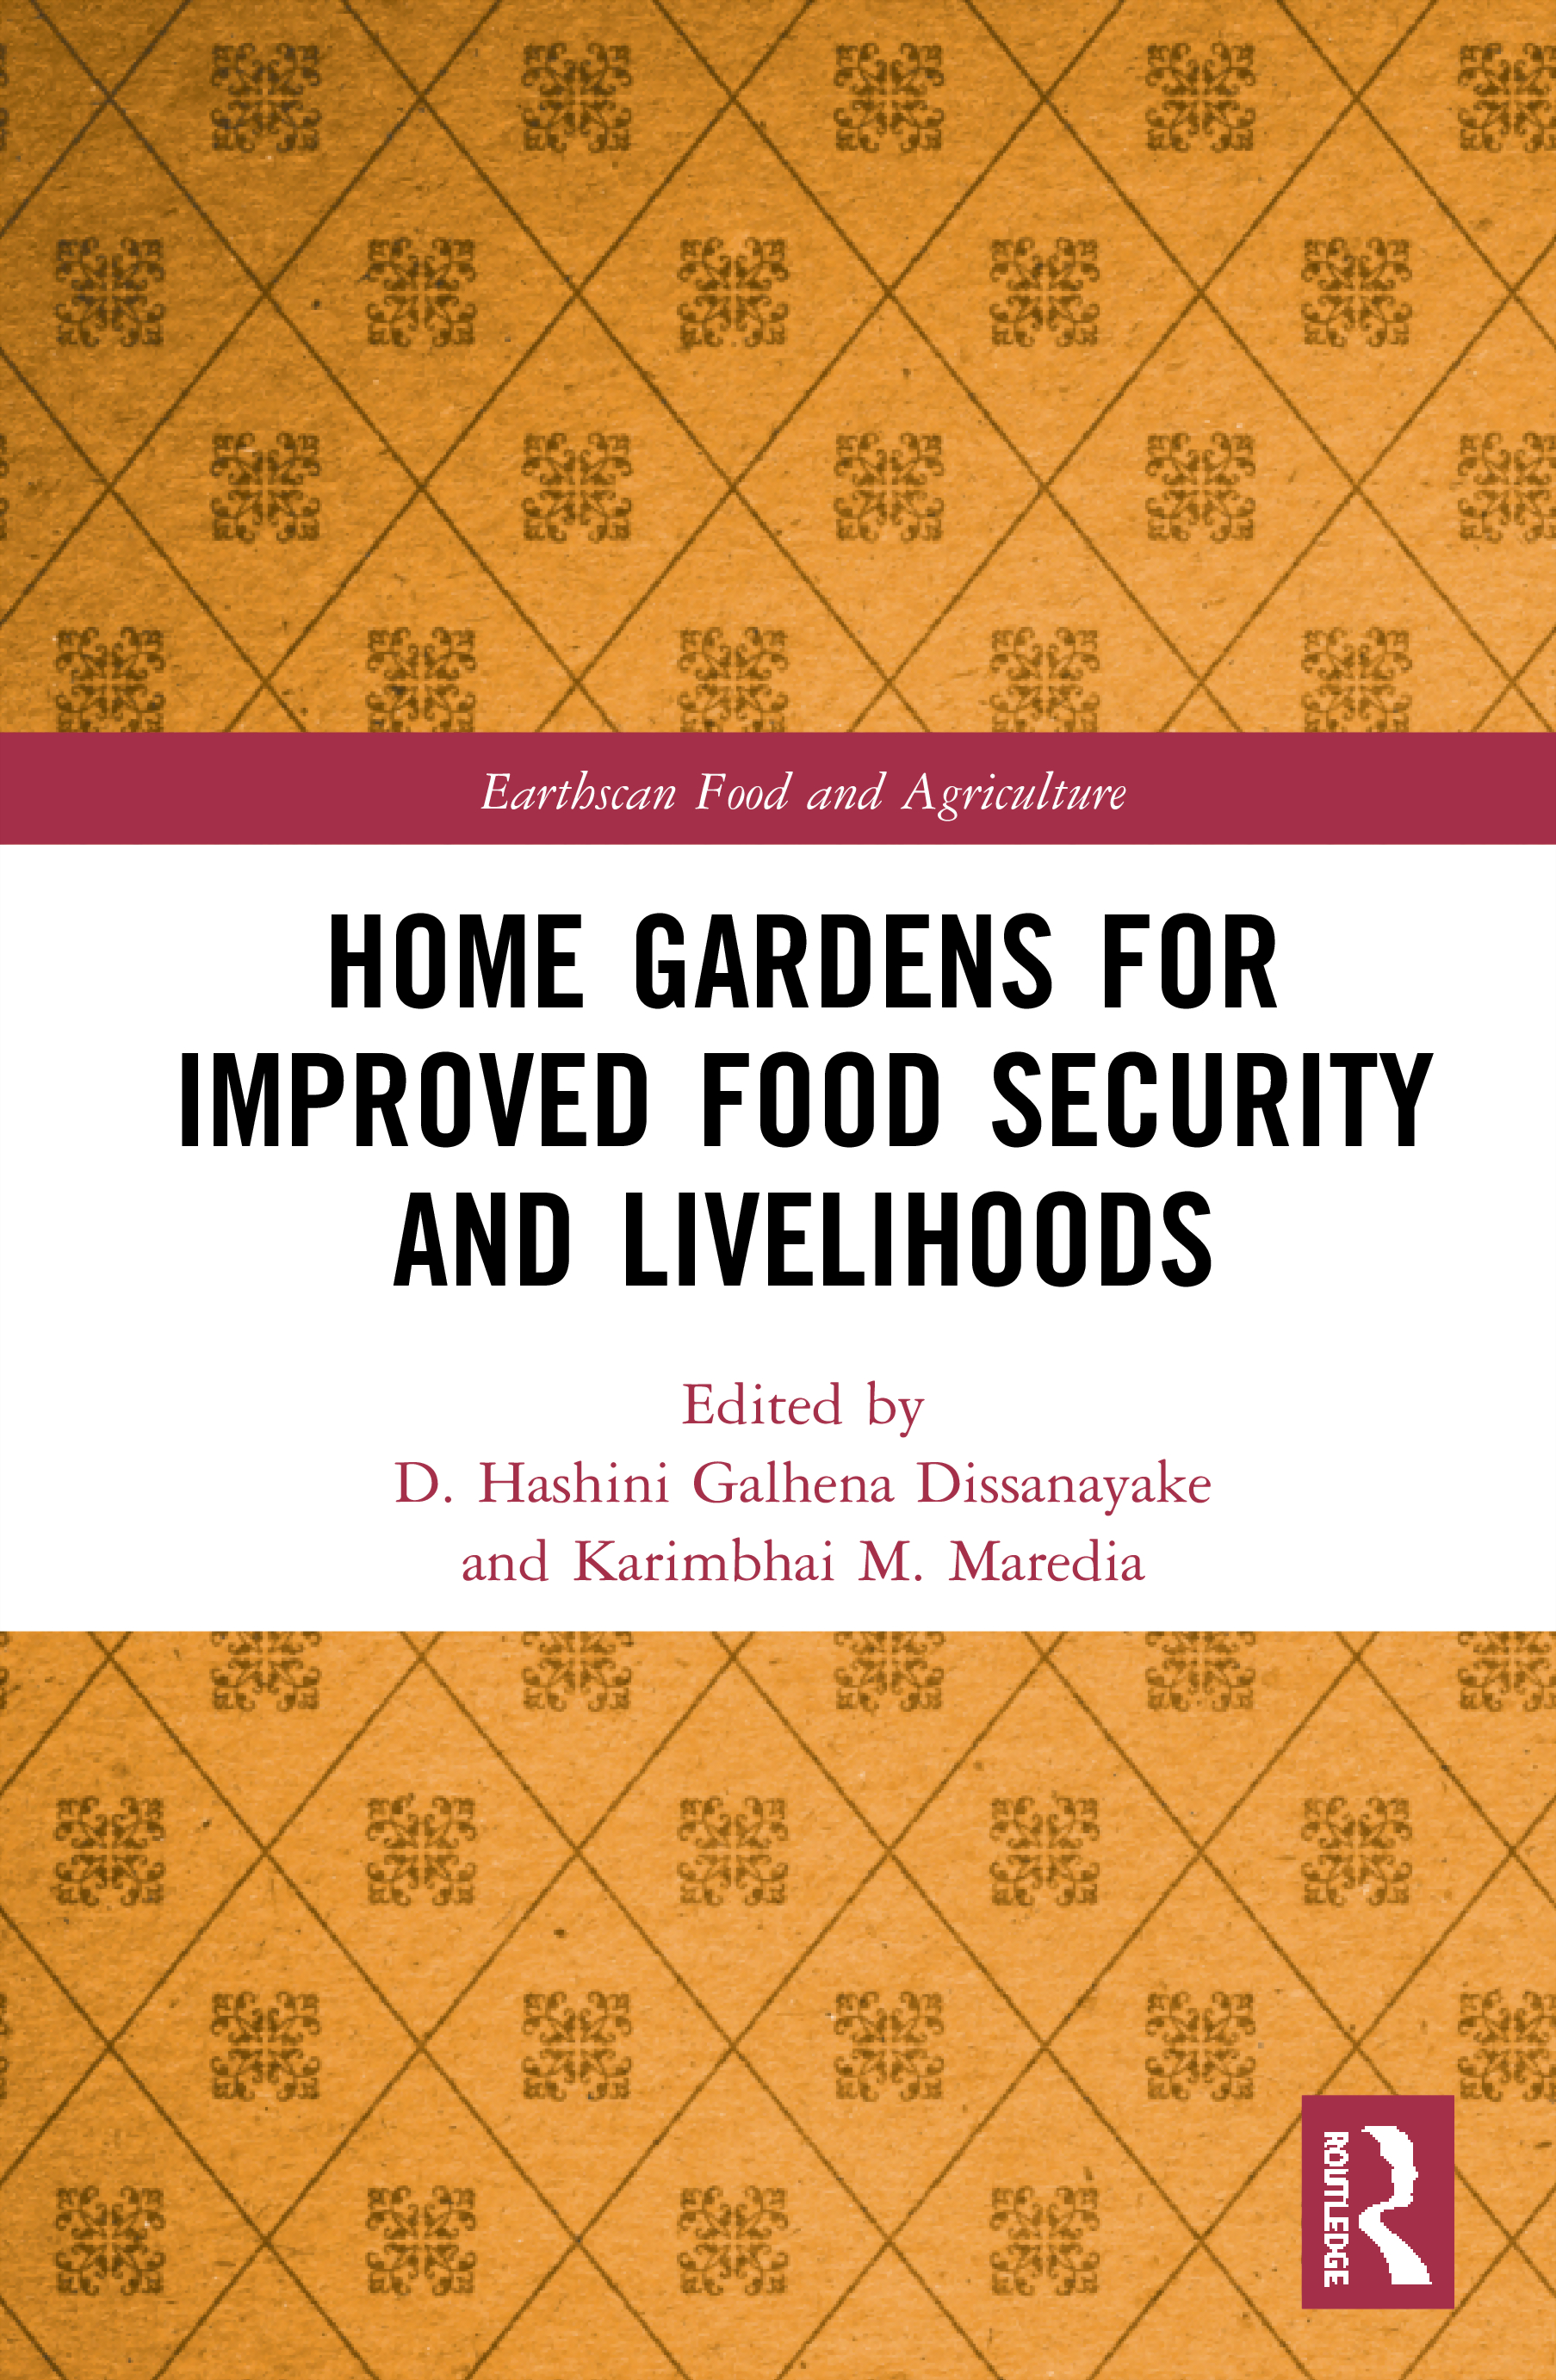 Home Gardens for Improved Food Security and Livelihoods book cover